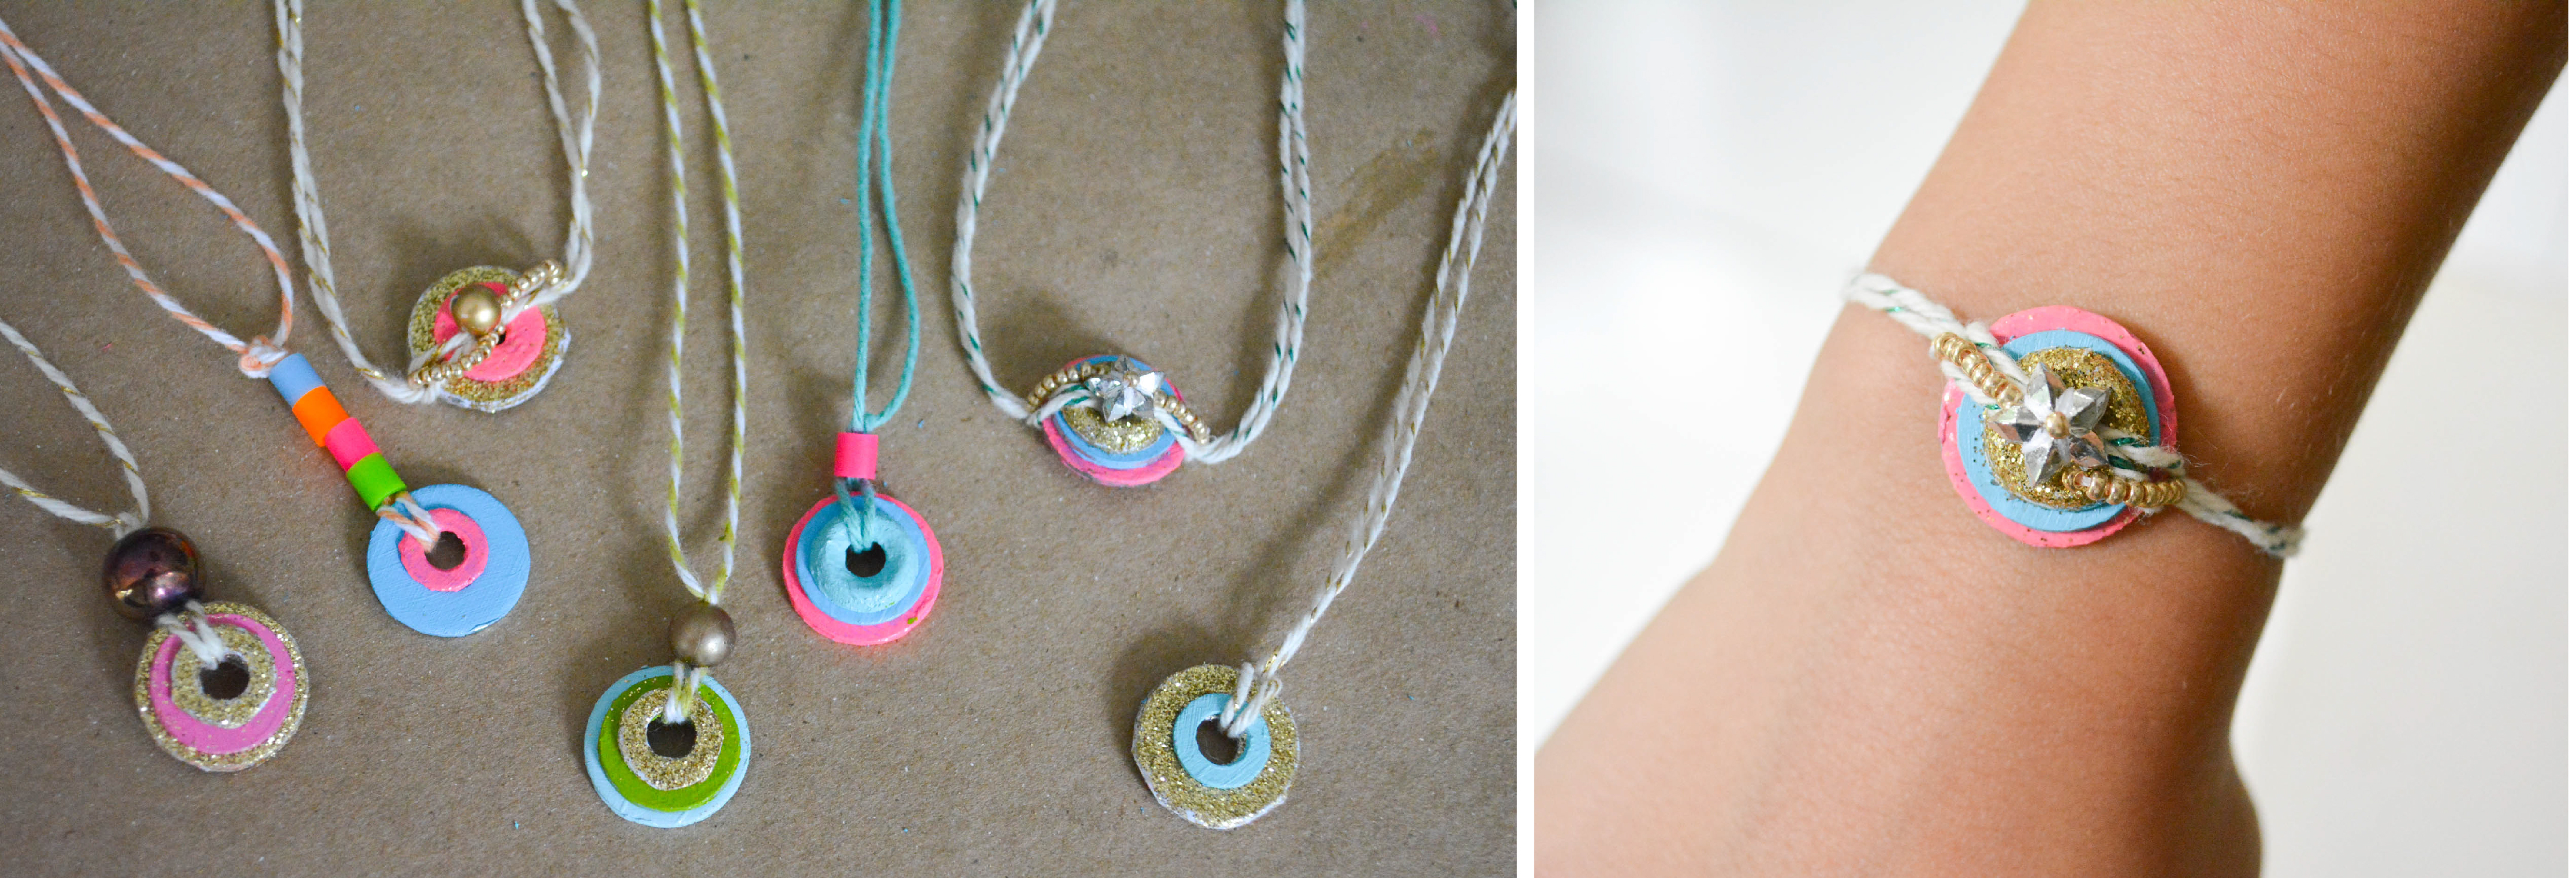 hardware wrapped washer necklaces necklace jewelry id